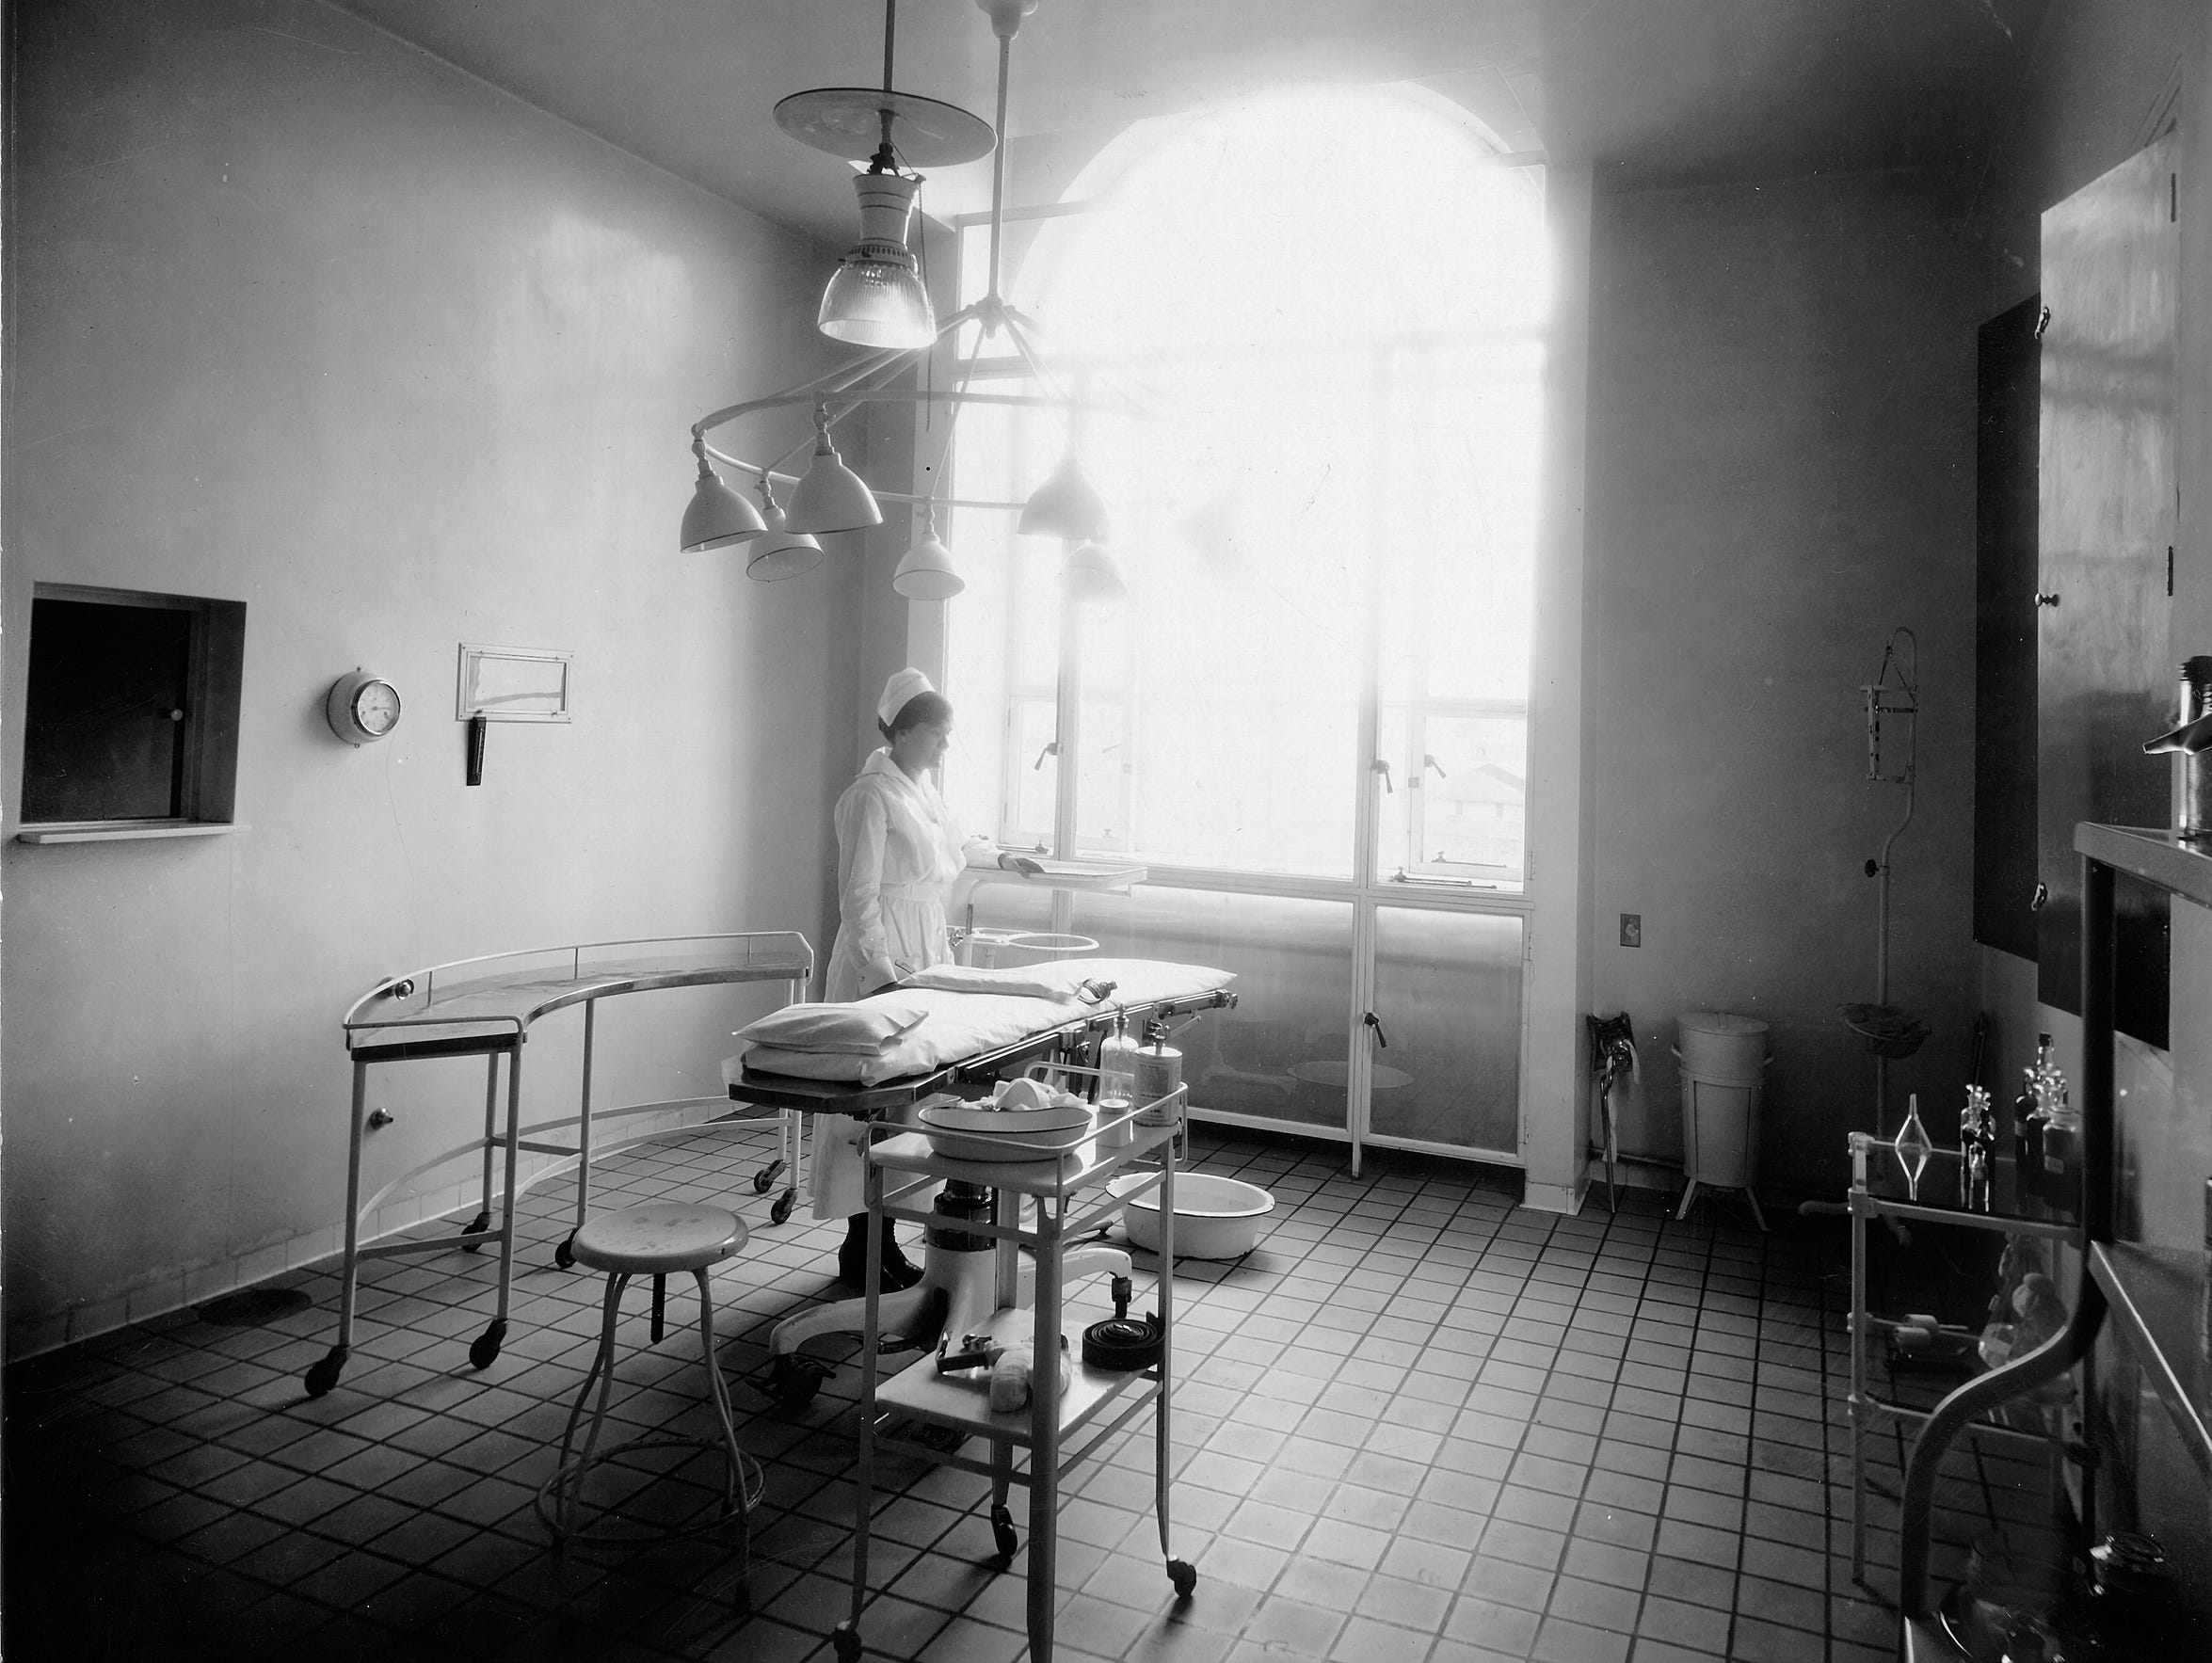 A woman in an operating room in the early days of Mansfield